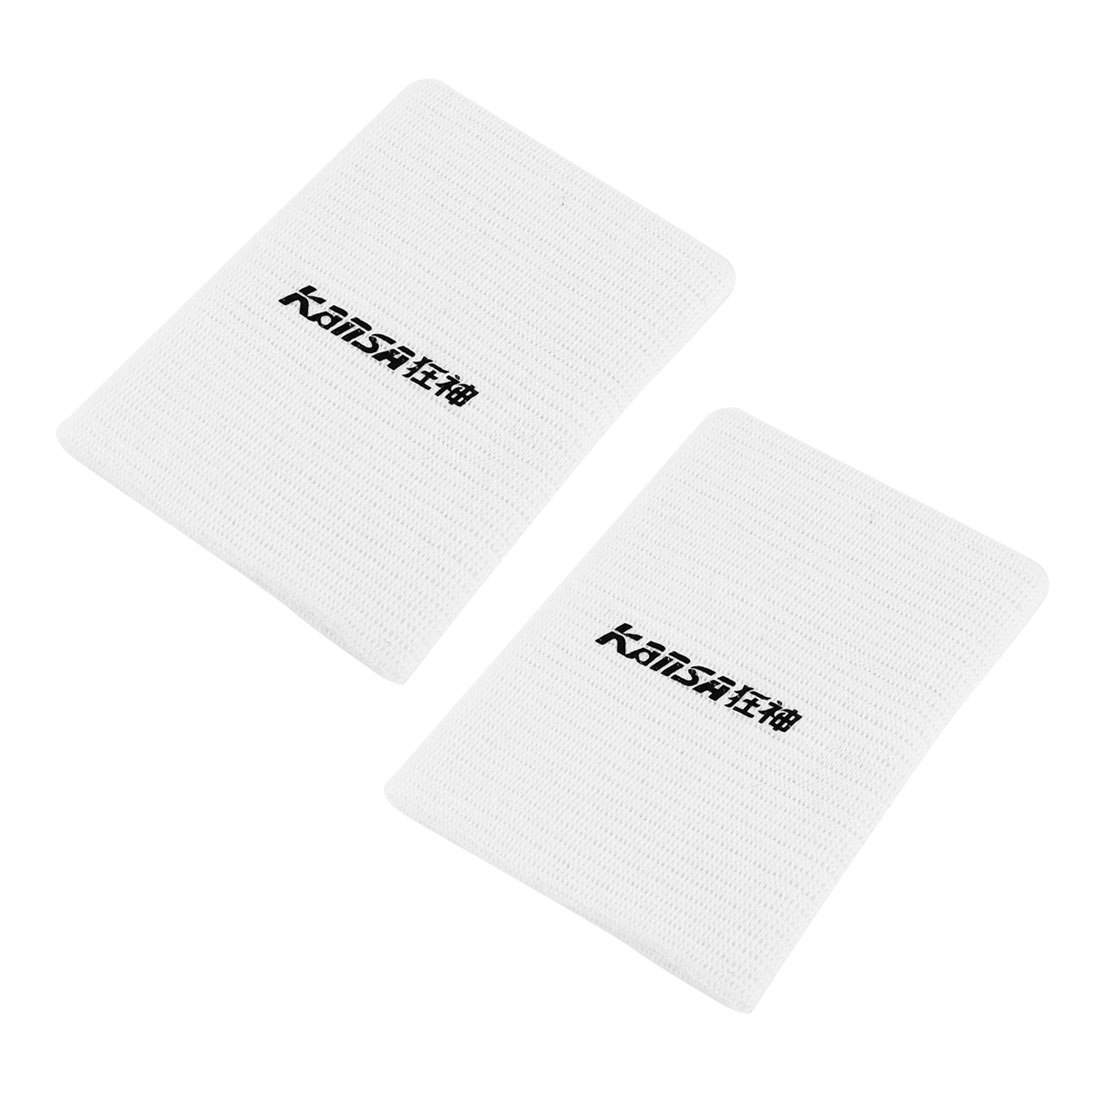 Sports Athletics White Elastic Wrist Band Support Brace Protector Pair